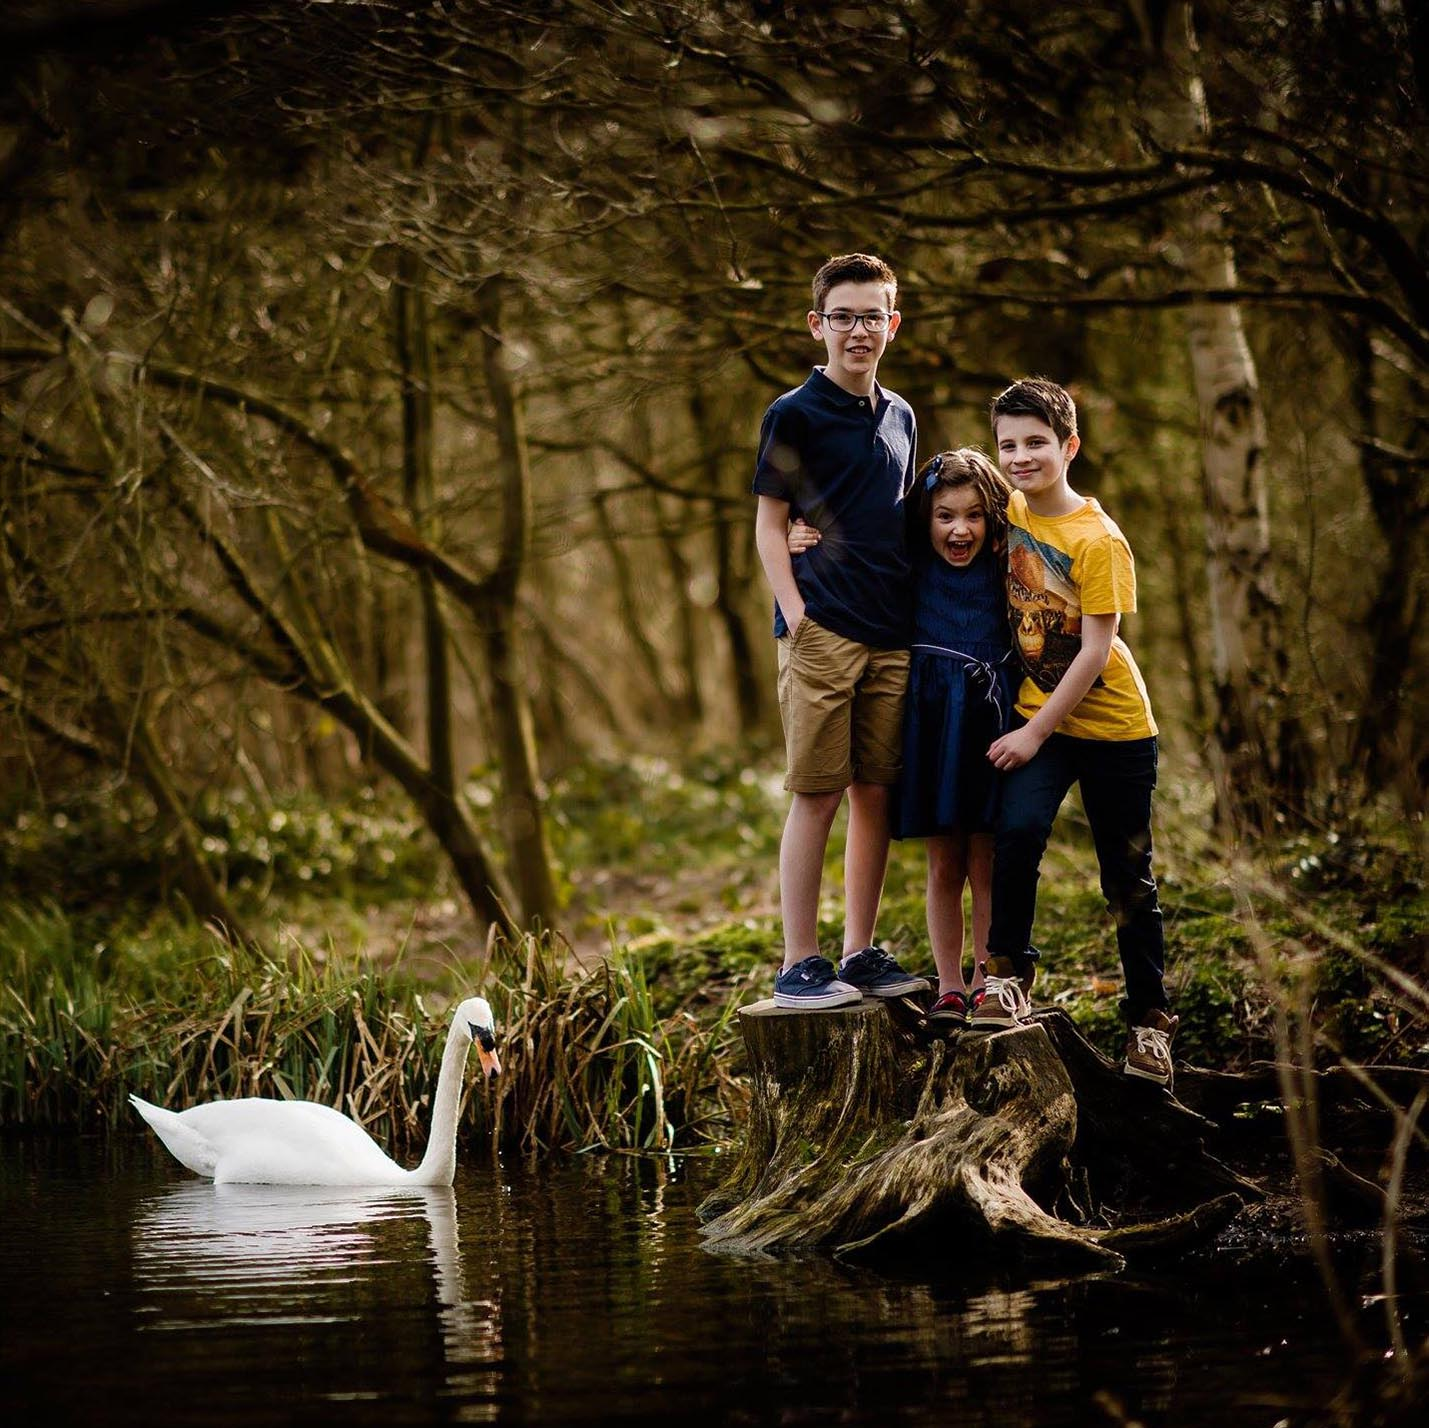 doncaster-family-portrait-photographer-yorkshire0011.jpg